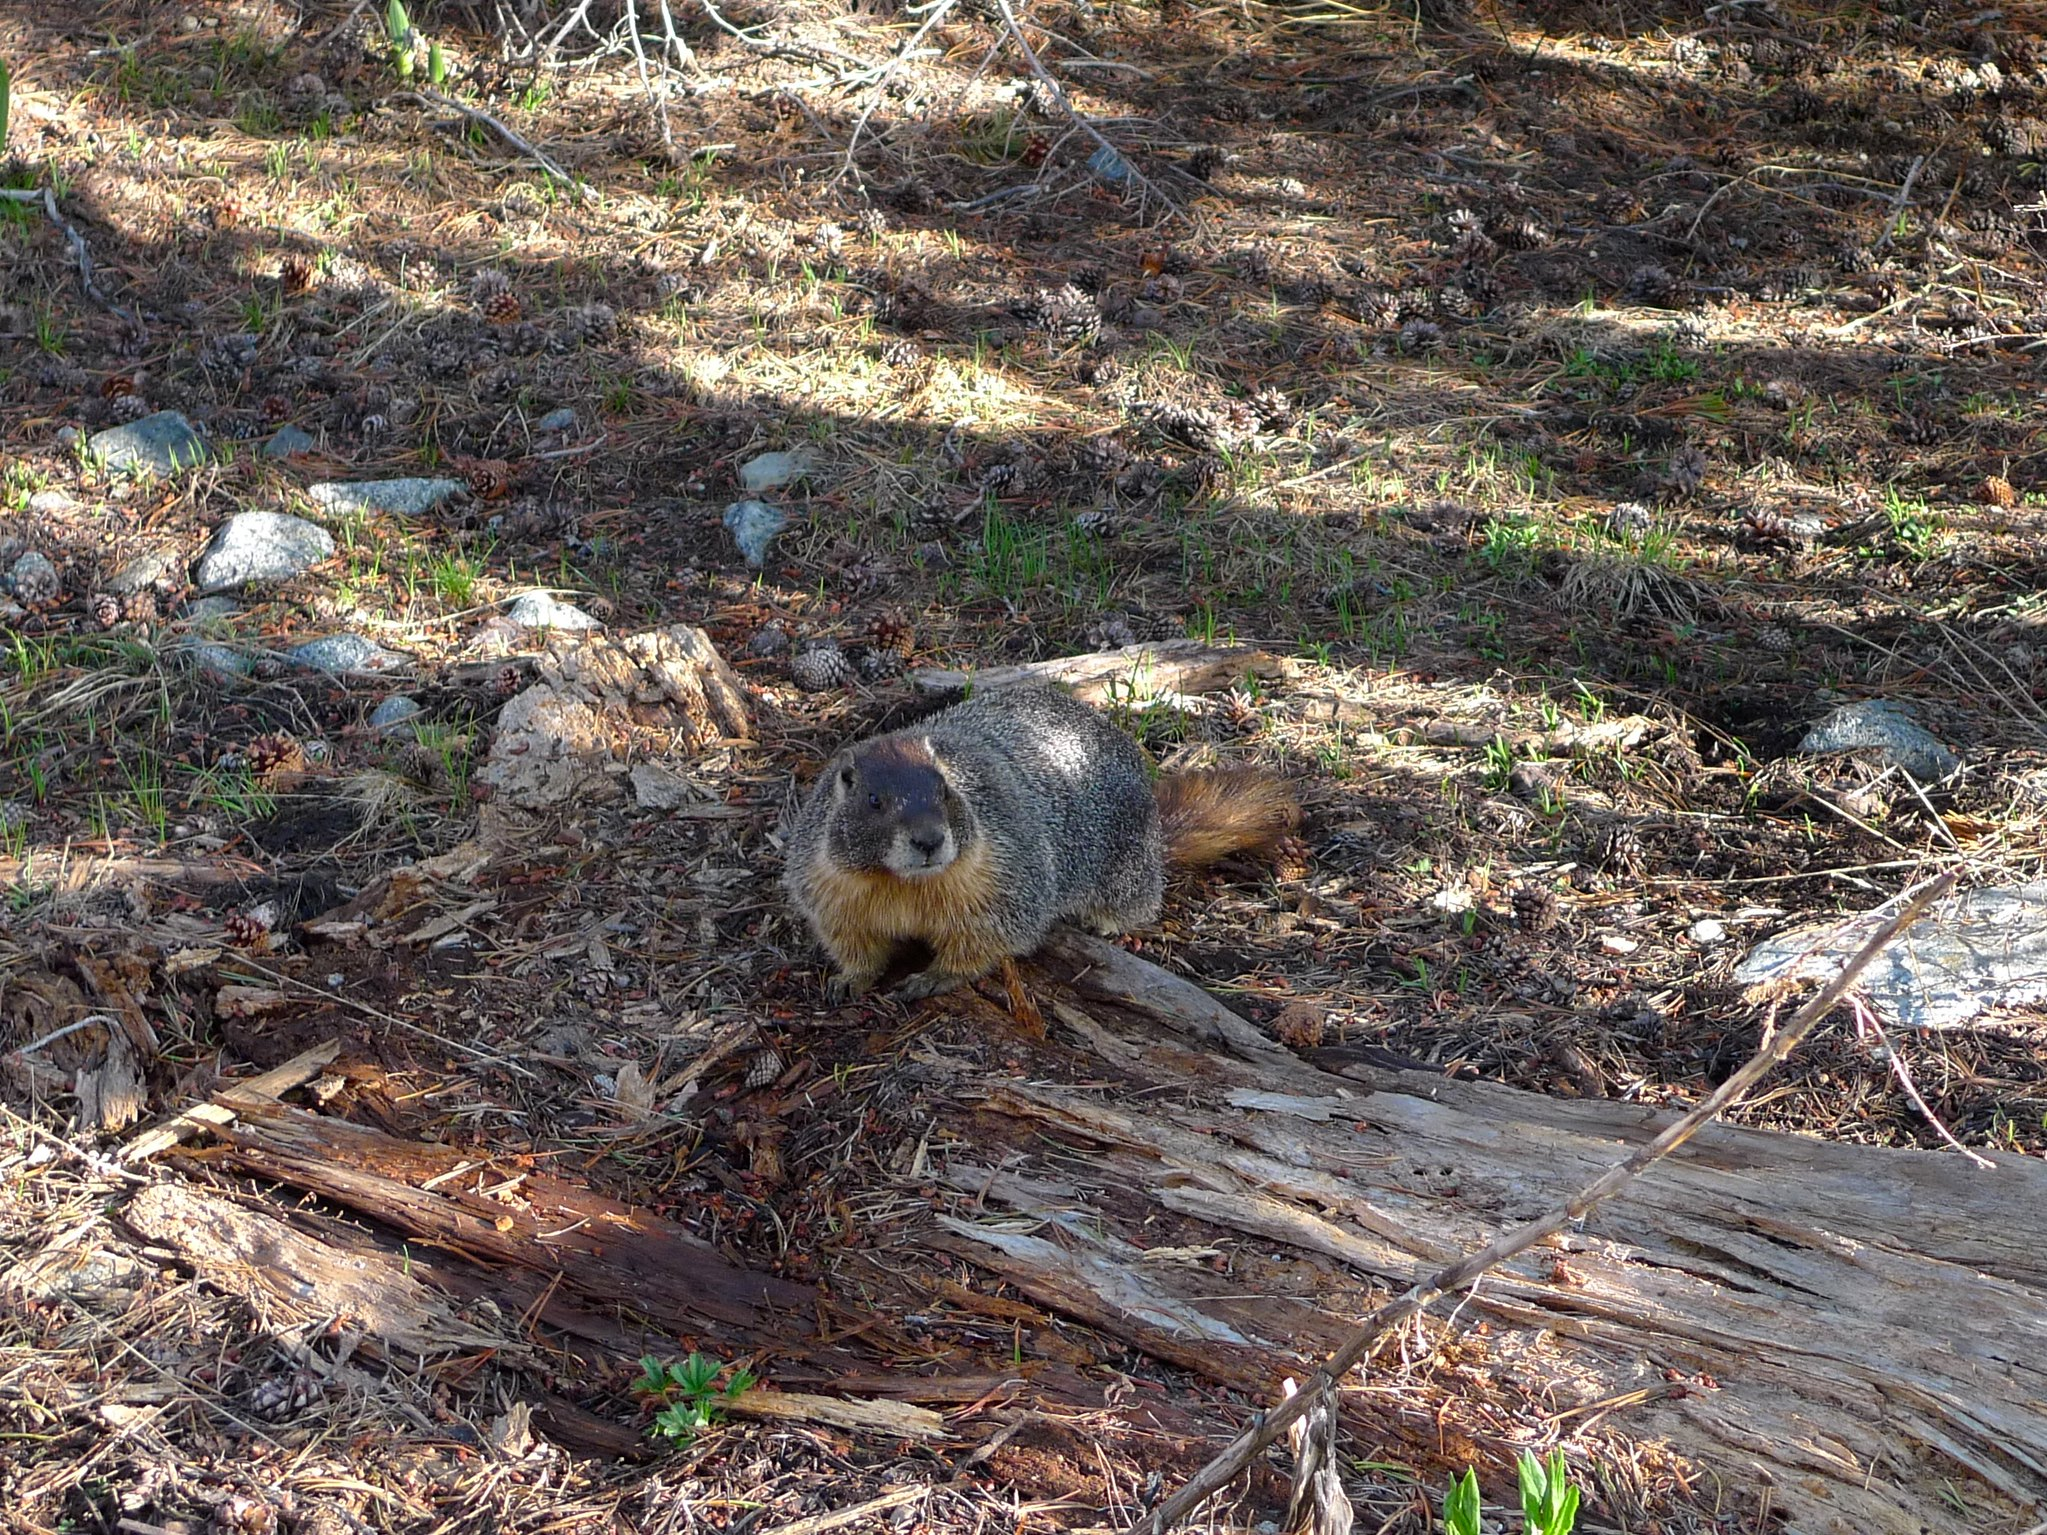 This marmot chewed off my sternum strap and ran away with it!